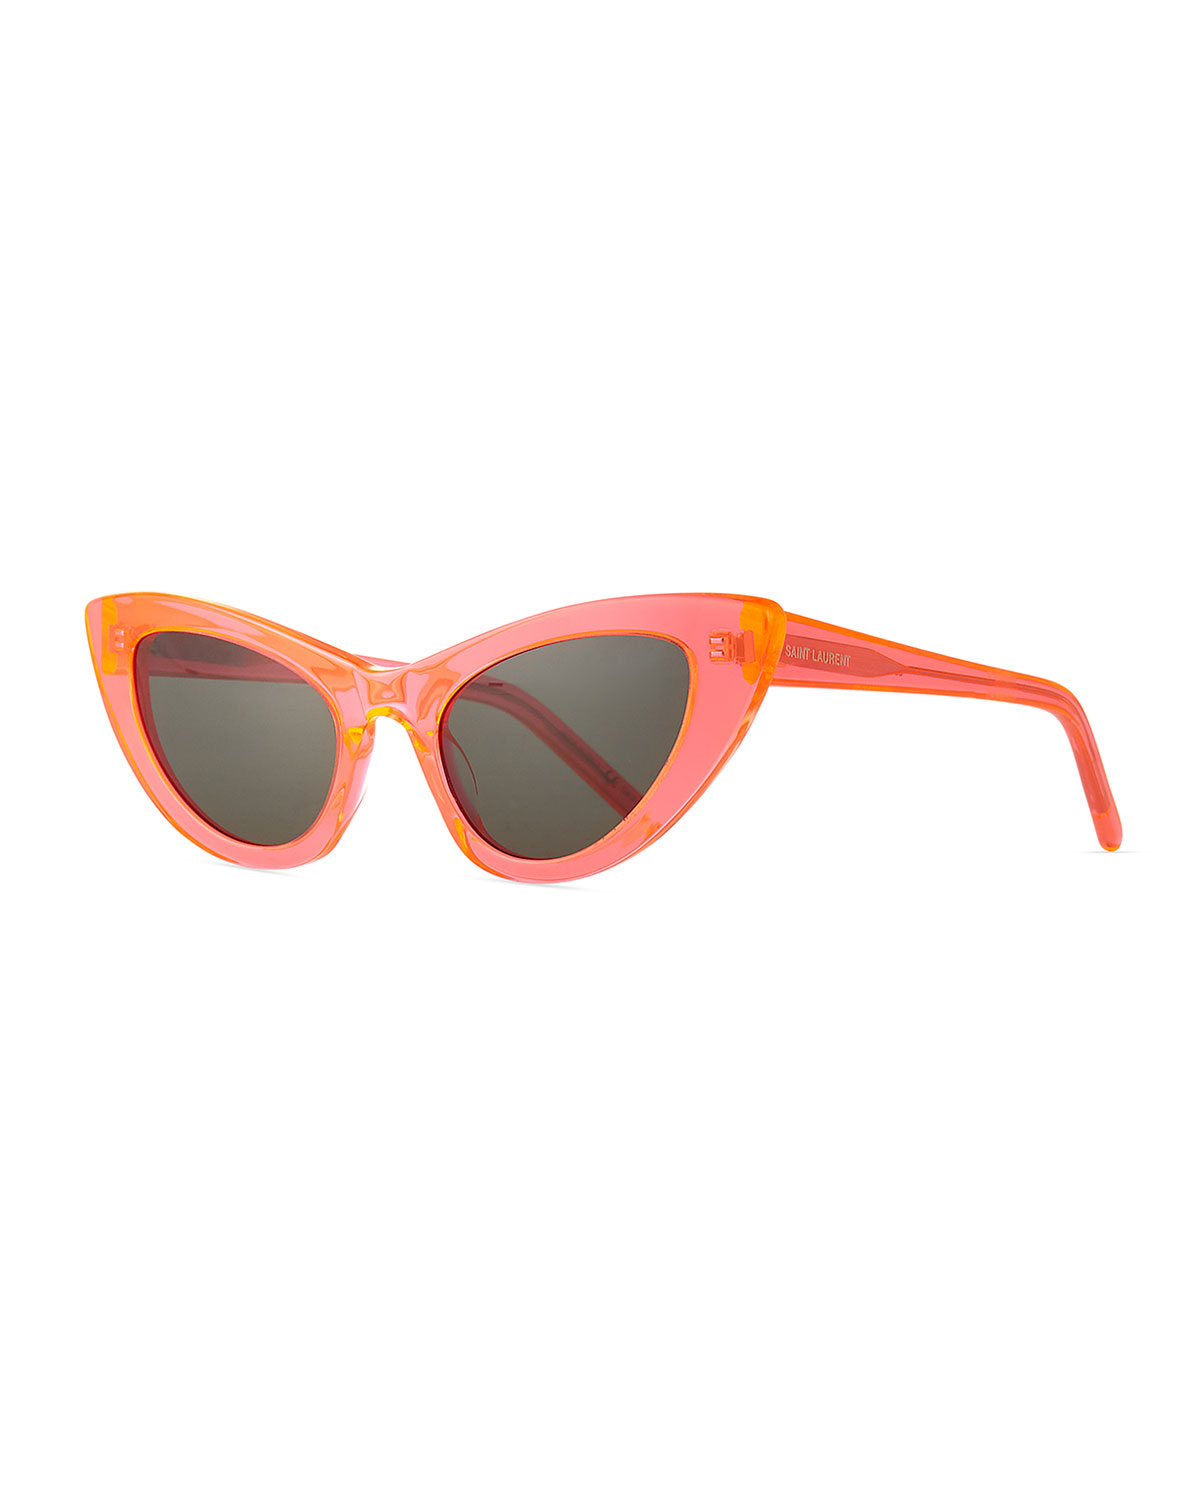 0d54a24384 Saint Laurent Lily Cat-Eye Acetate Sunglasses